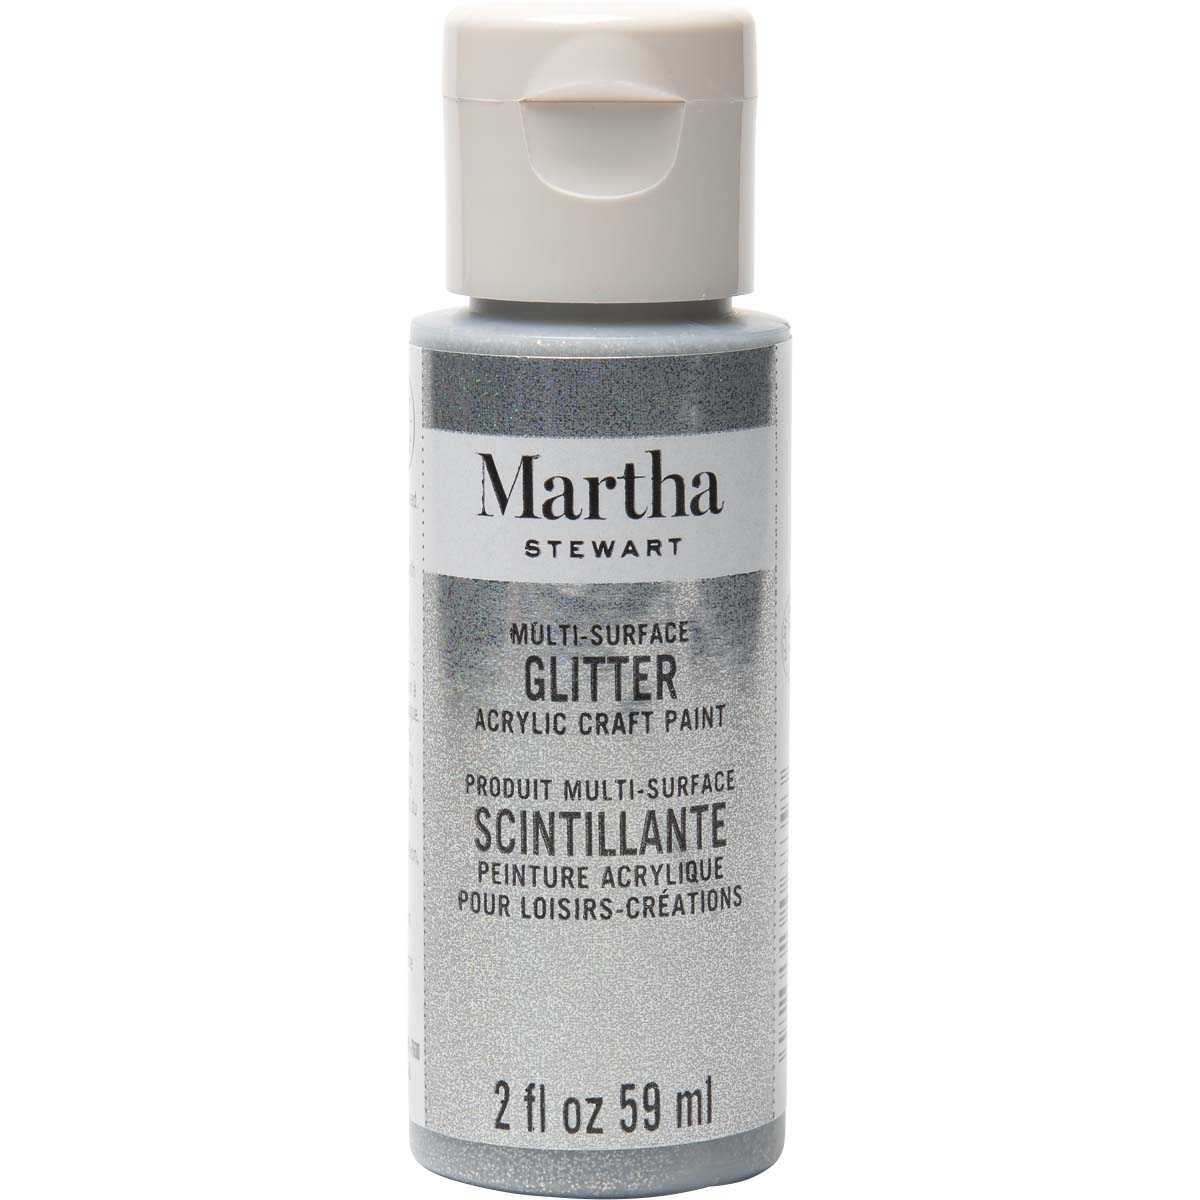 Martha Stewart ® Multi-Surface Glitter Acrylic Craft Paint - Sterling, 2 oz. - 32181CA